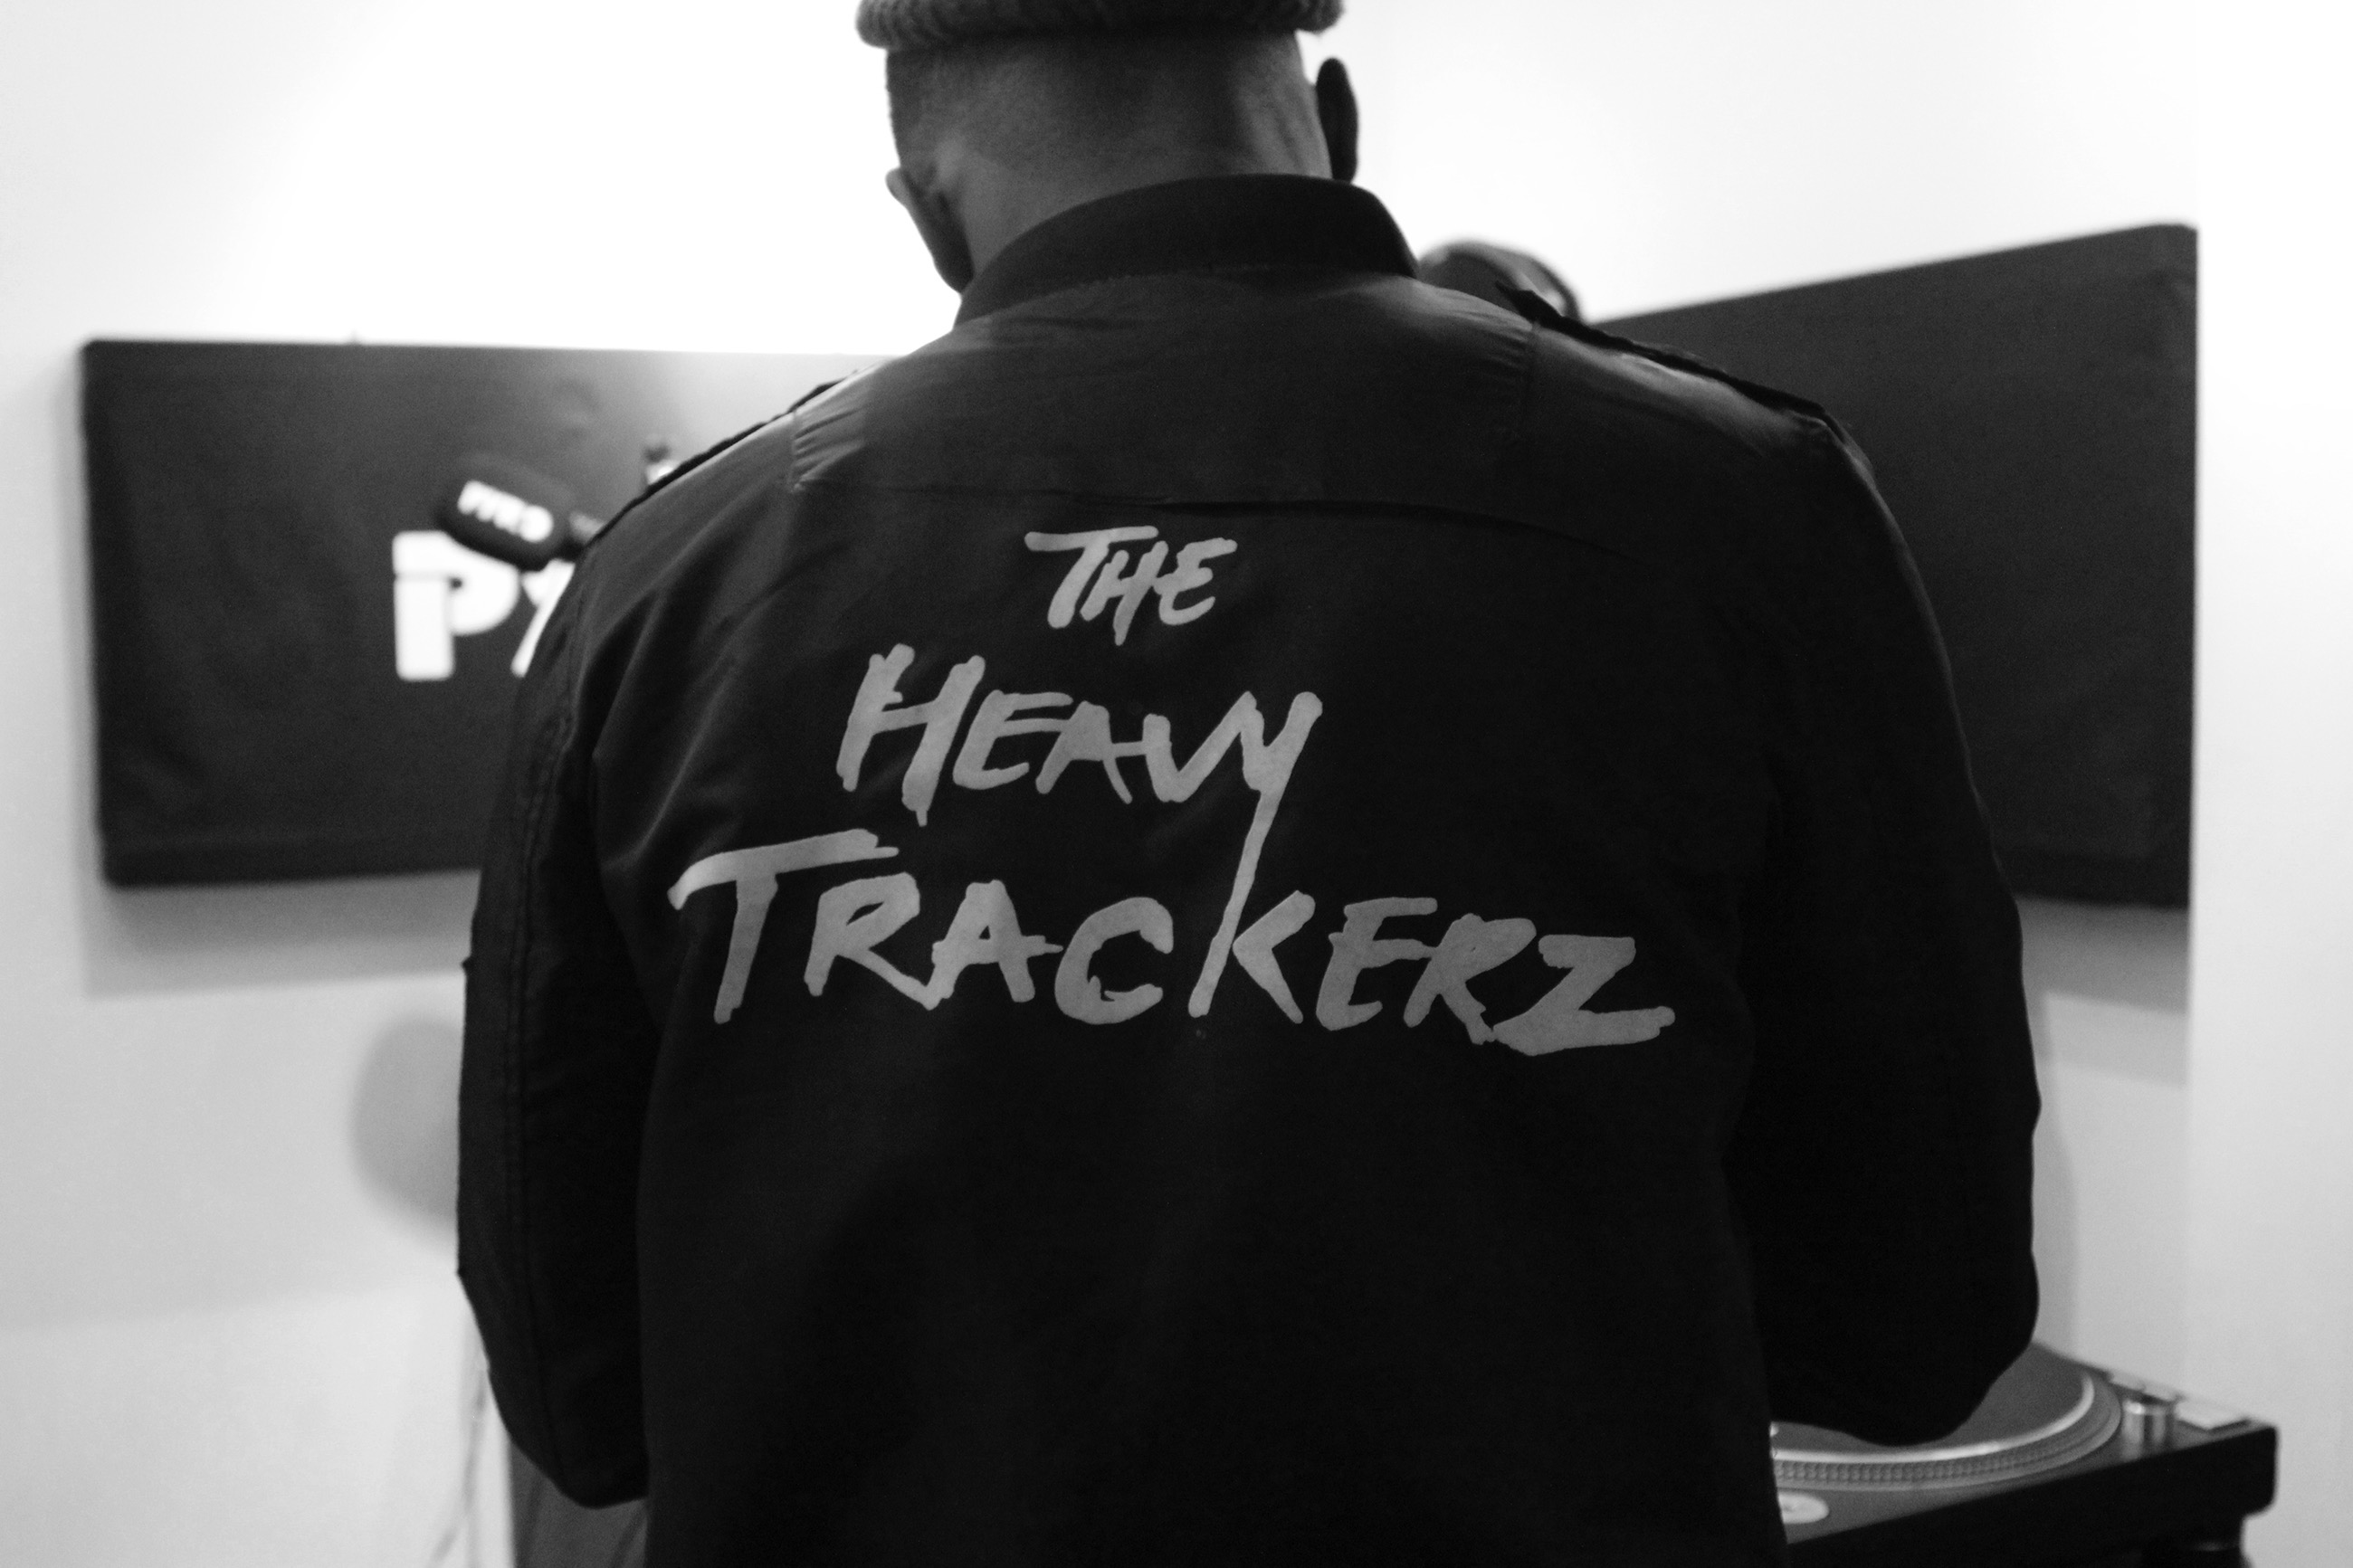 The HeavyTrackerz, HeavyTrackerz, PyroRadio, PyroRadio.com